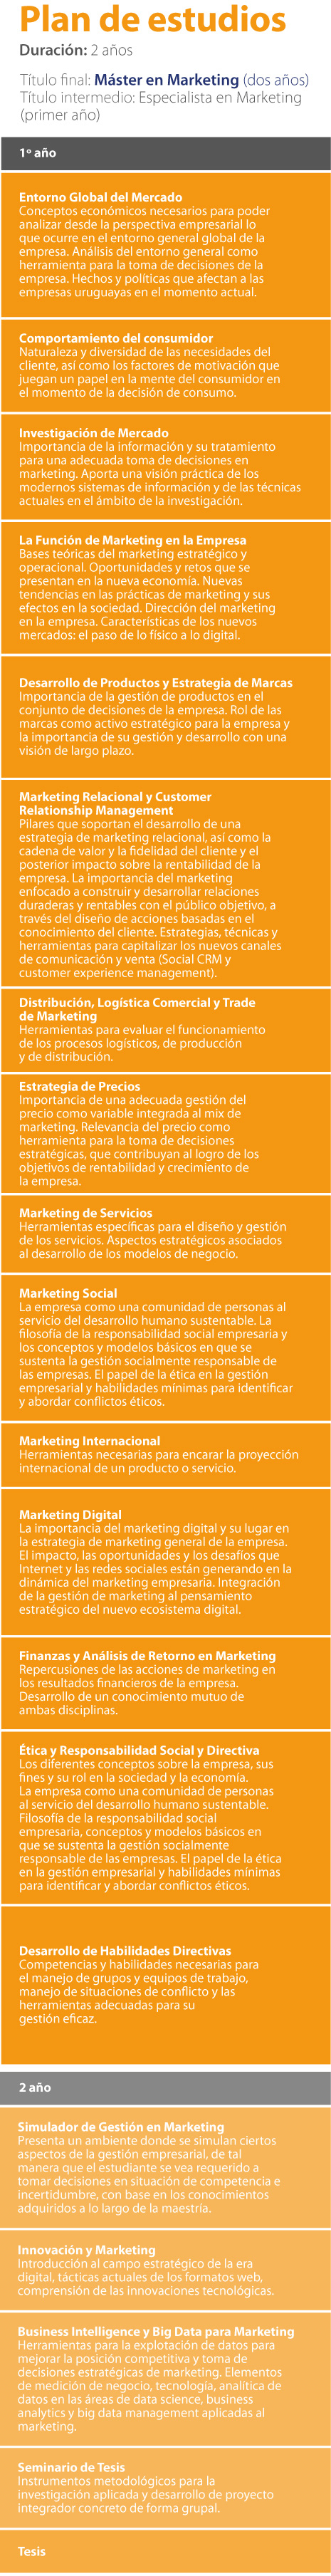 Plan de estudio Maestría en Marketing